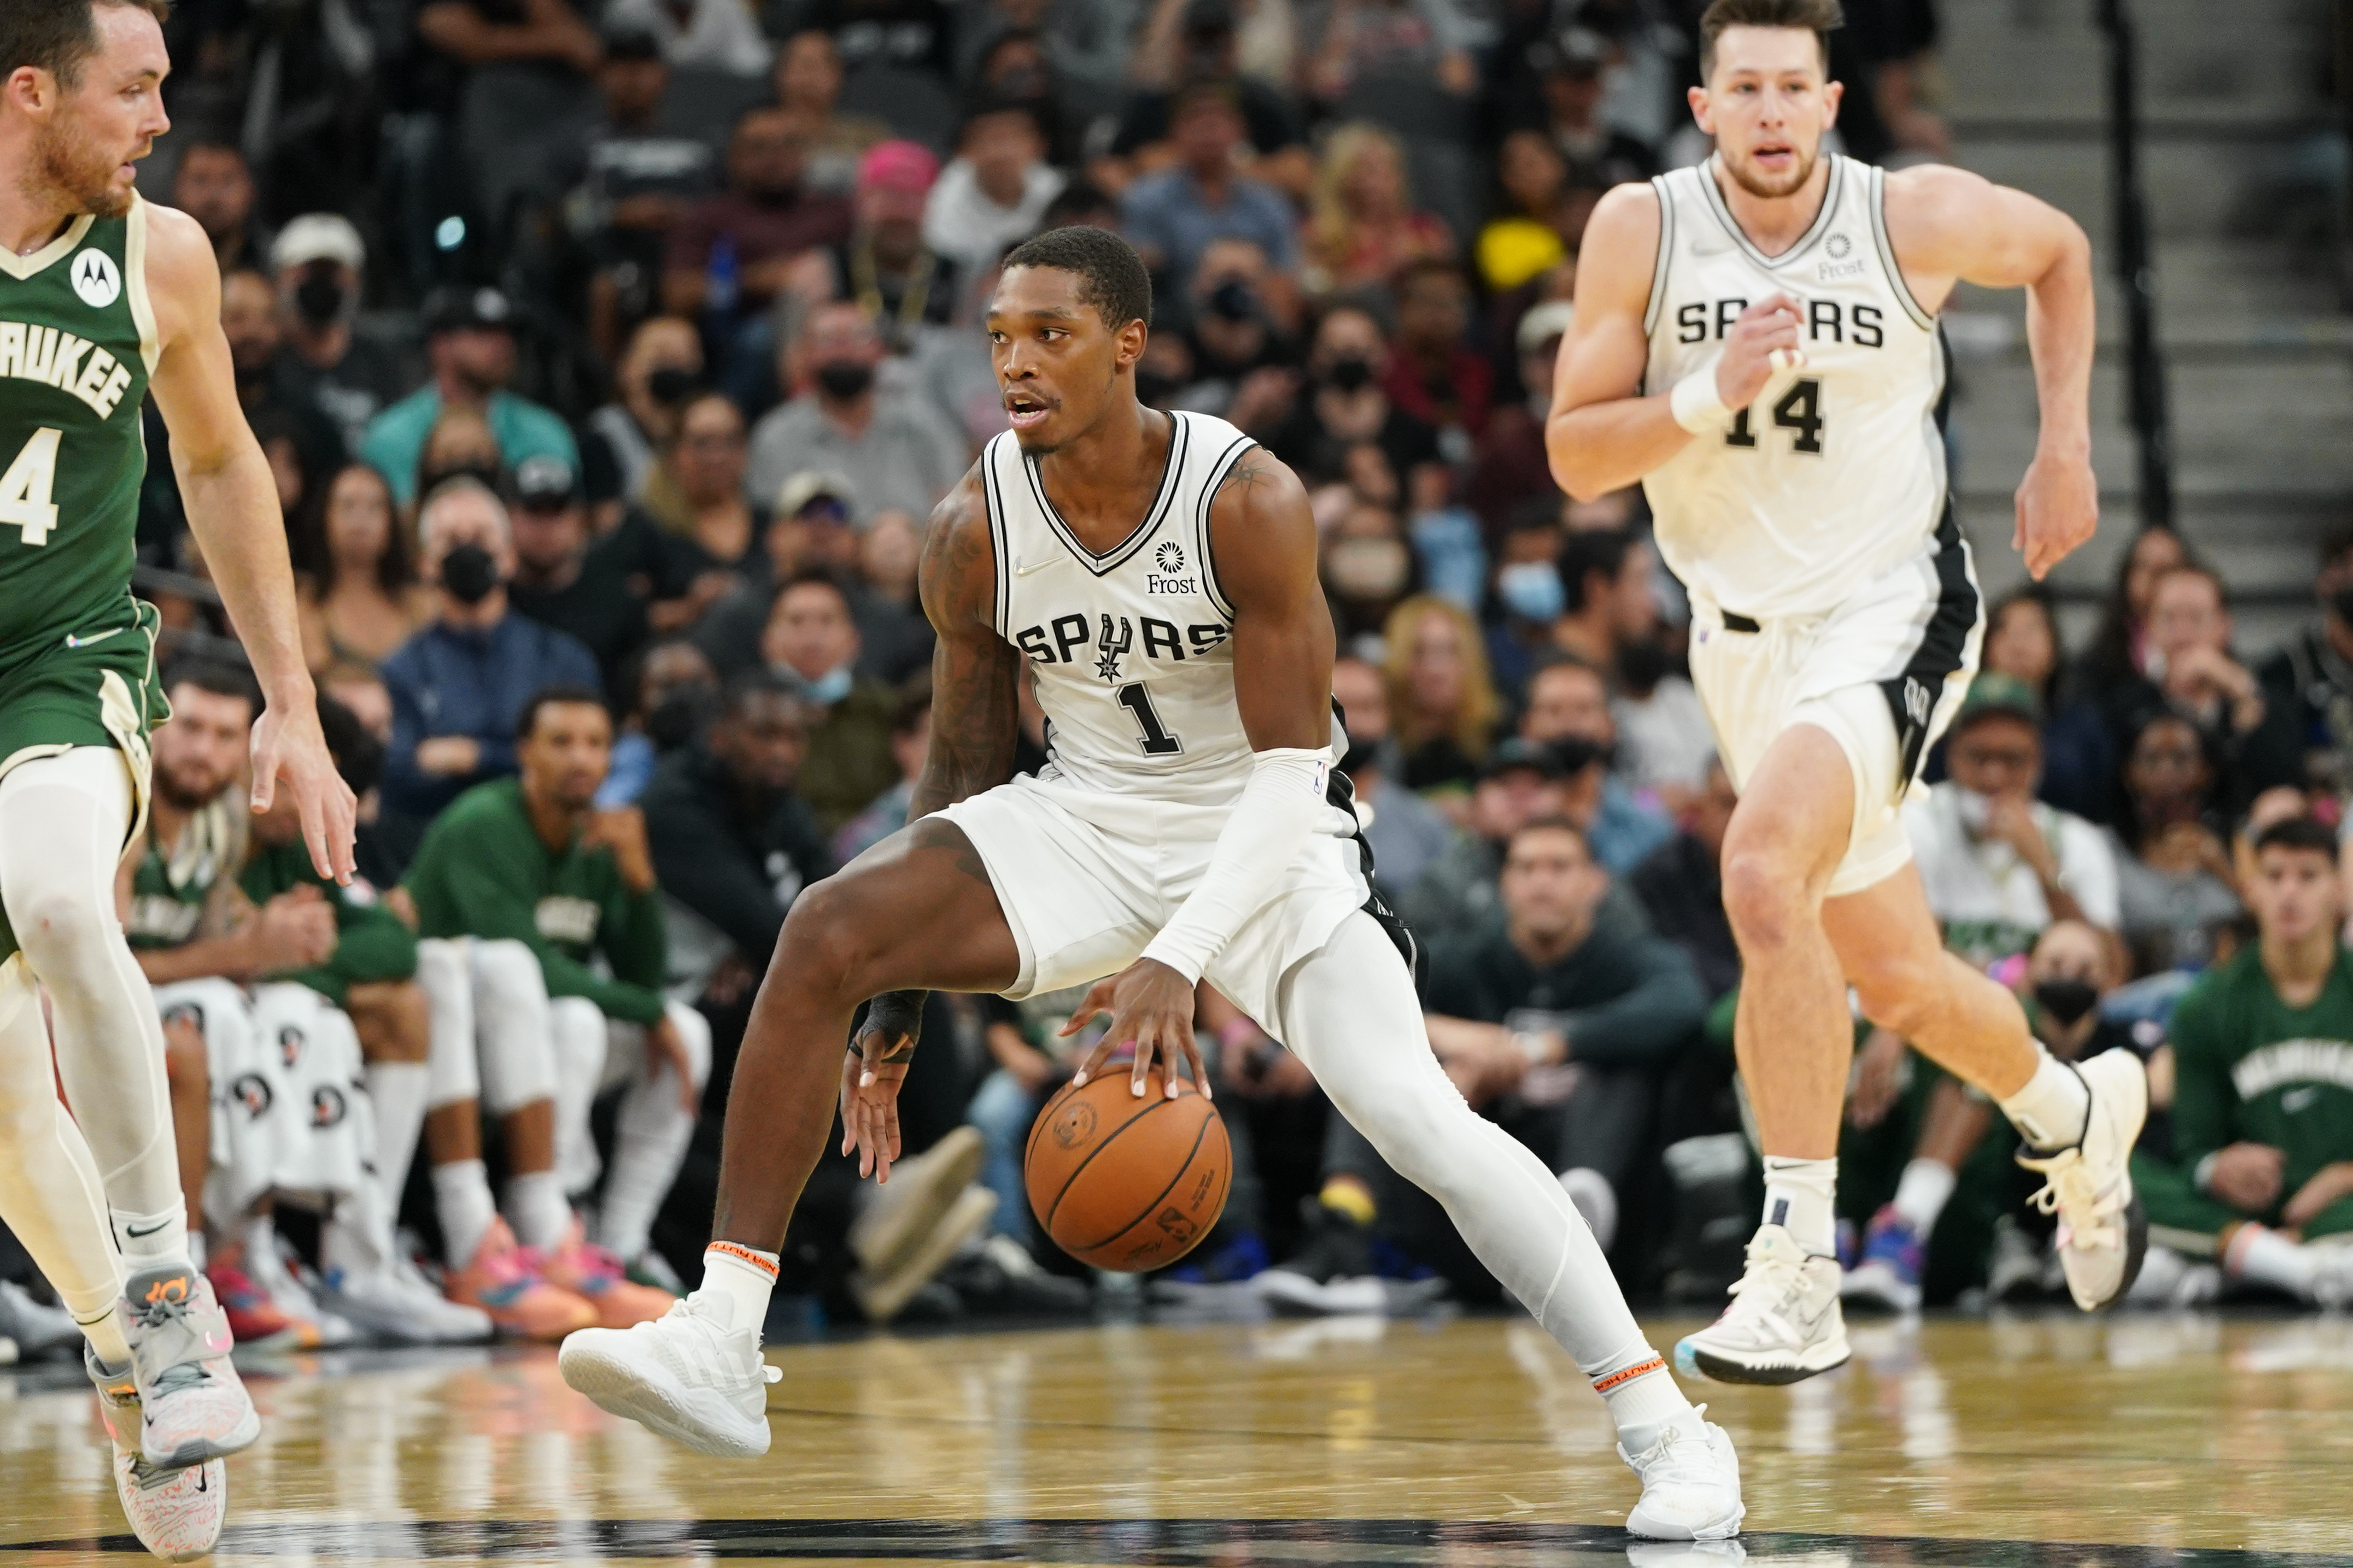 San Antonio Spurs guard Lonnie Walker IV (1) dribbles in the second half against the Milwaukee Bucks at the AT&T Center.